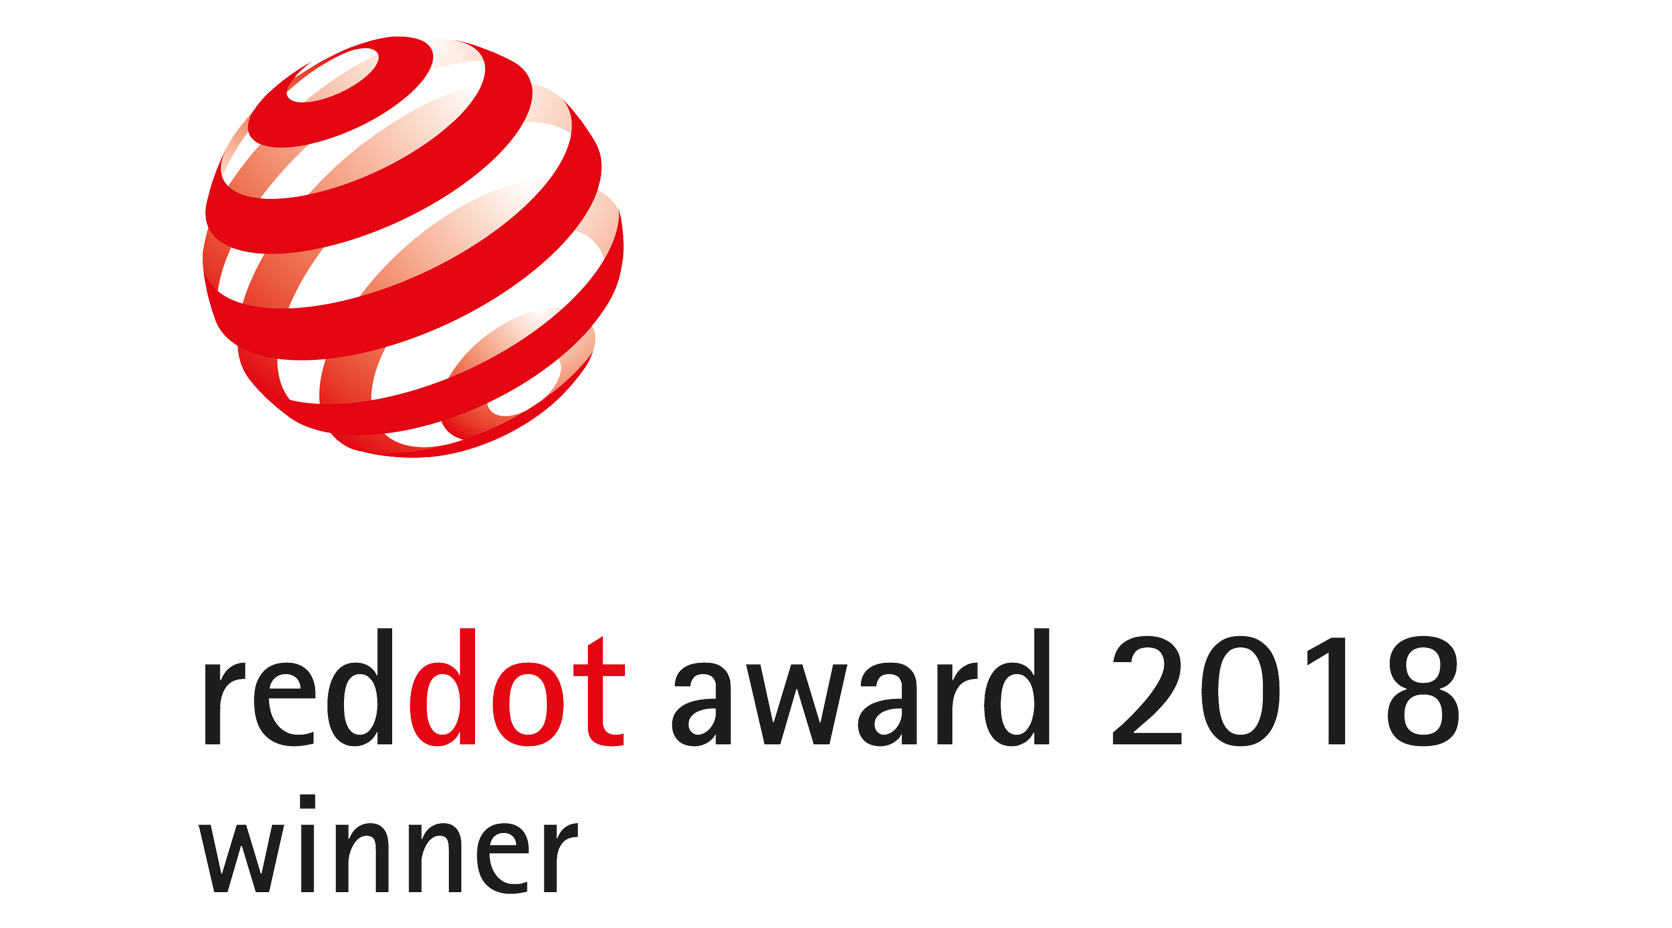 EnBW - reddot award winner 2018